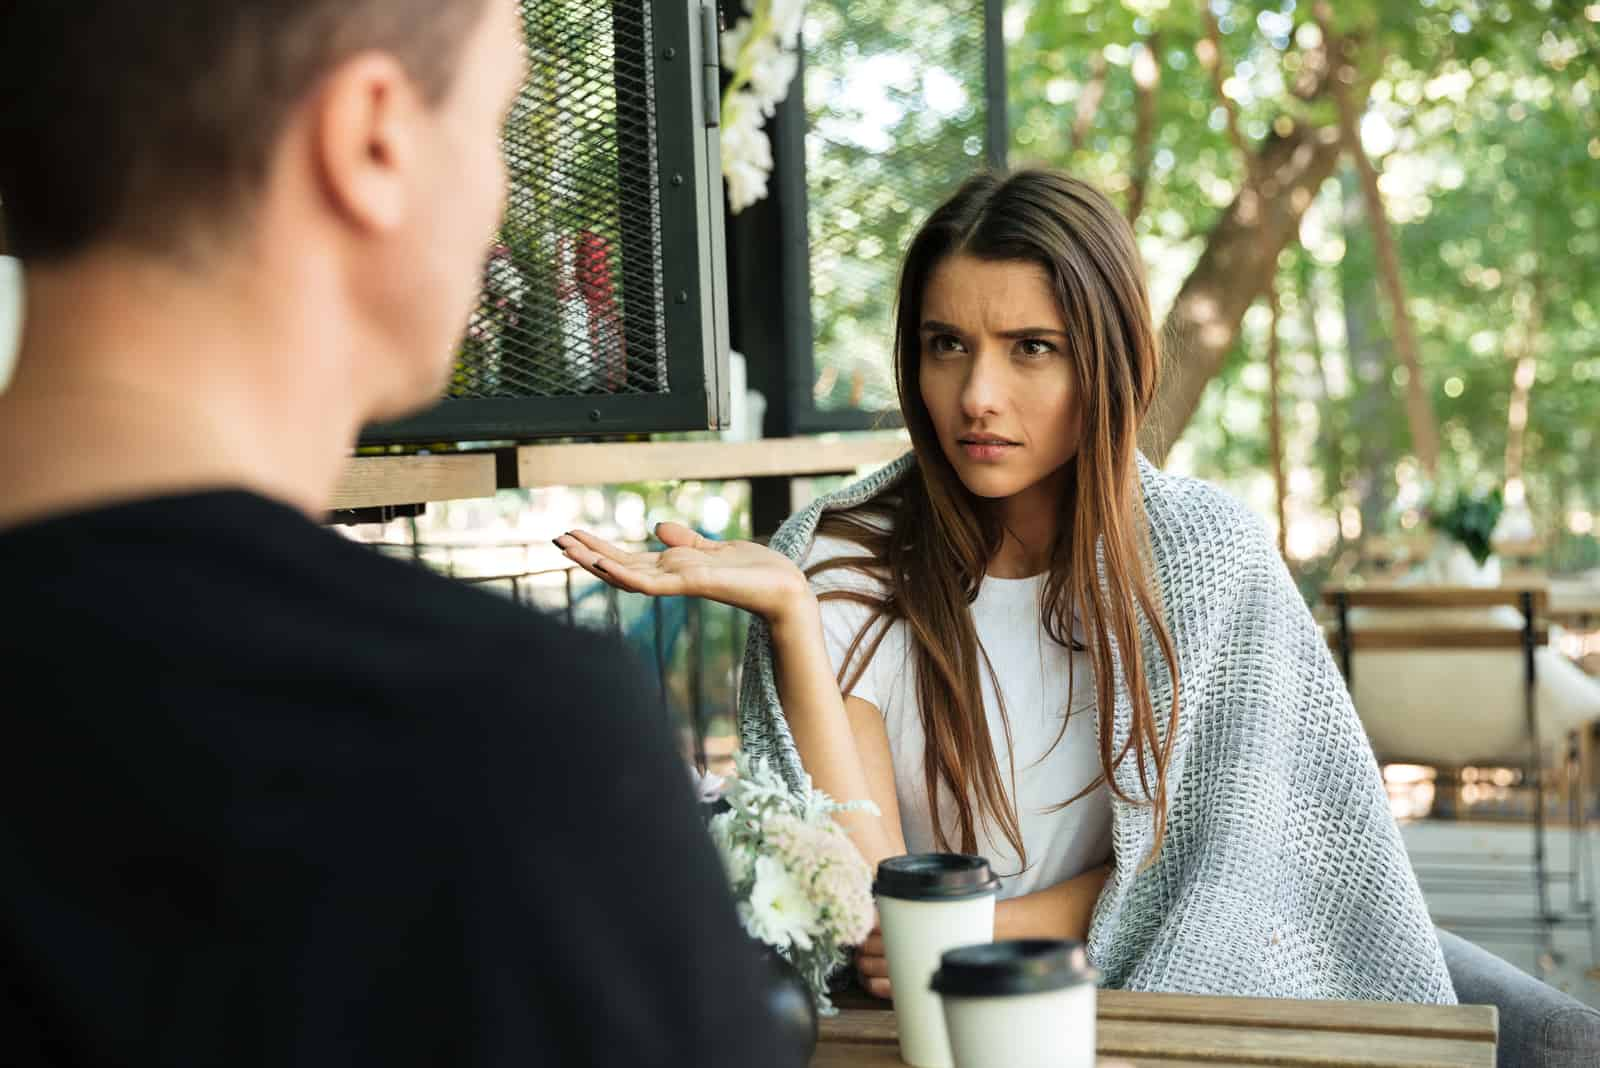 How To Tell Someone You're Not Interested: 7 Best Ways + Examples